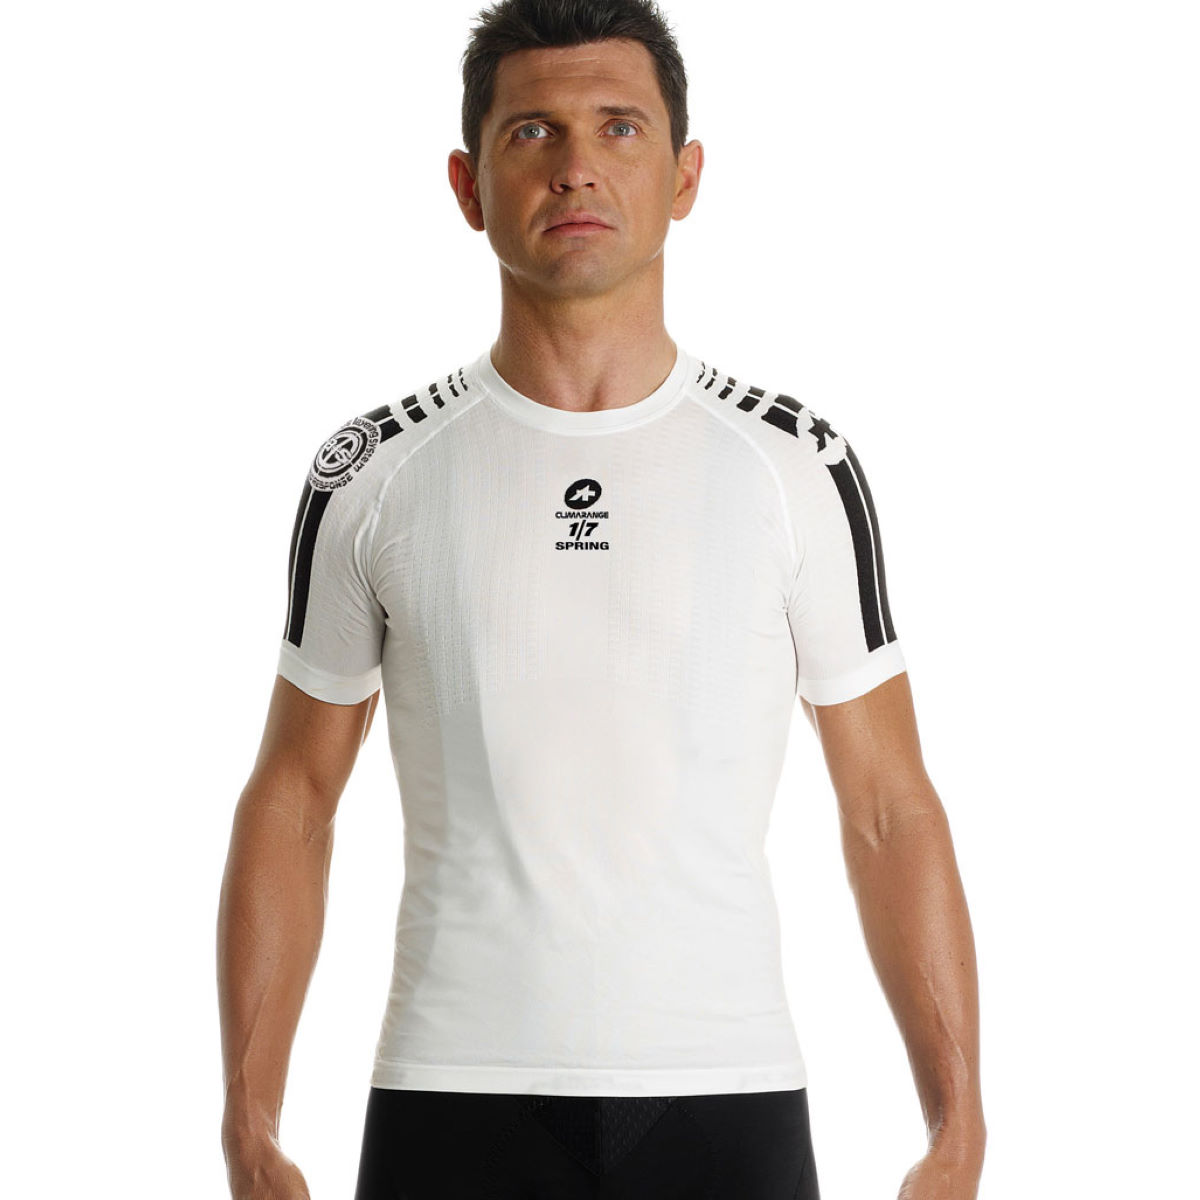 Assos ss skinfoil spring short sleeve base layer base layers white ss14 ave411we3 0